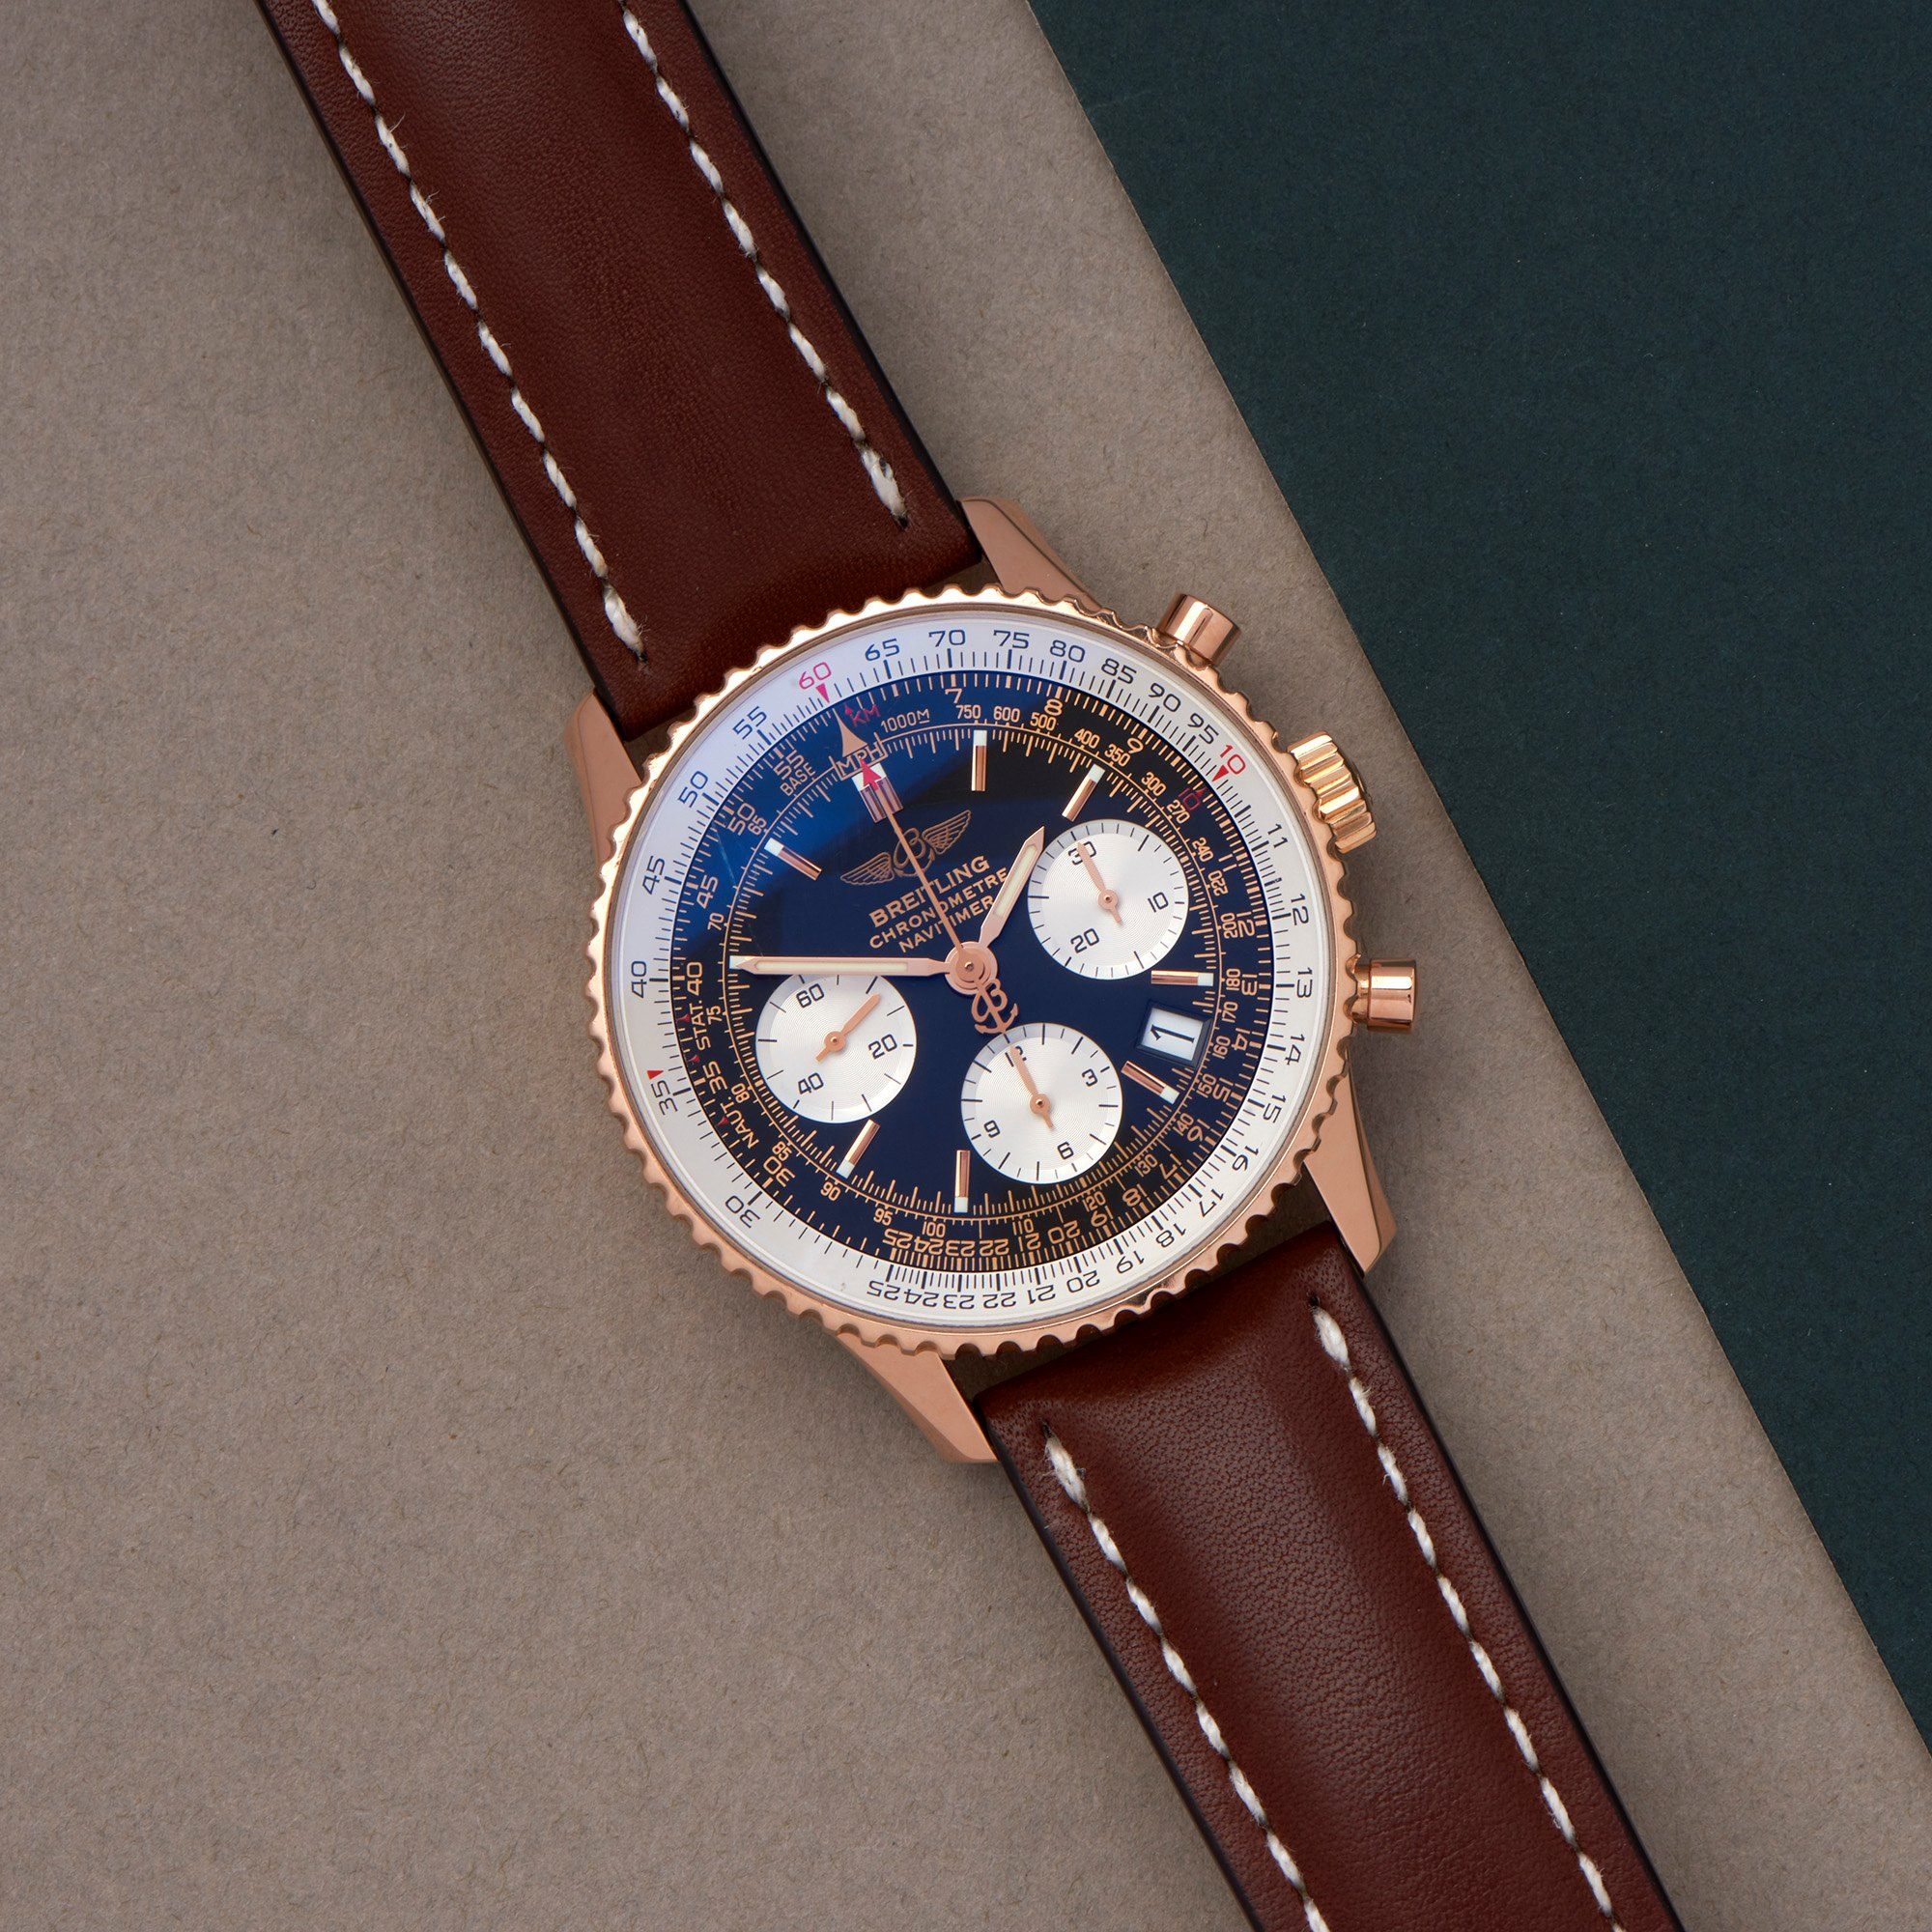 Breitling Navitimer Limited Edition of 500 Pieces 18K Rose Gold R23322